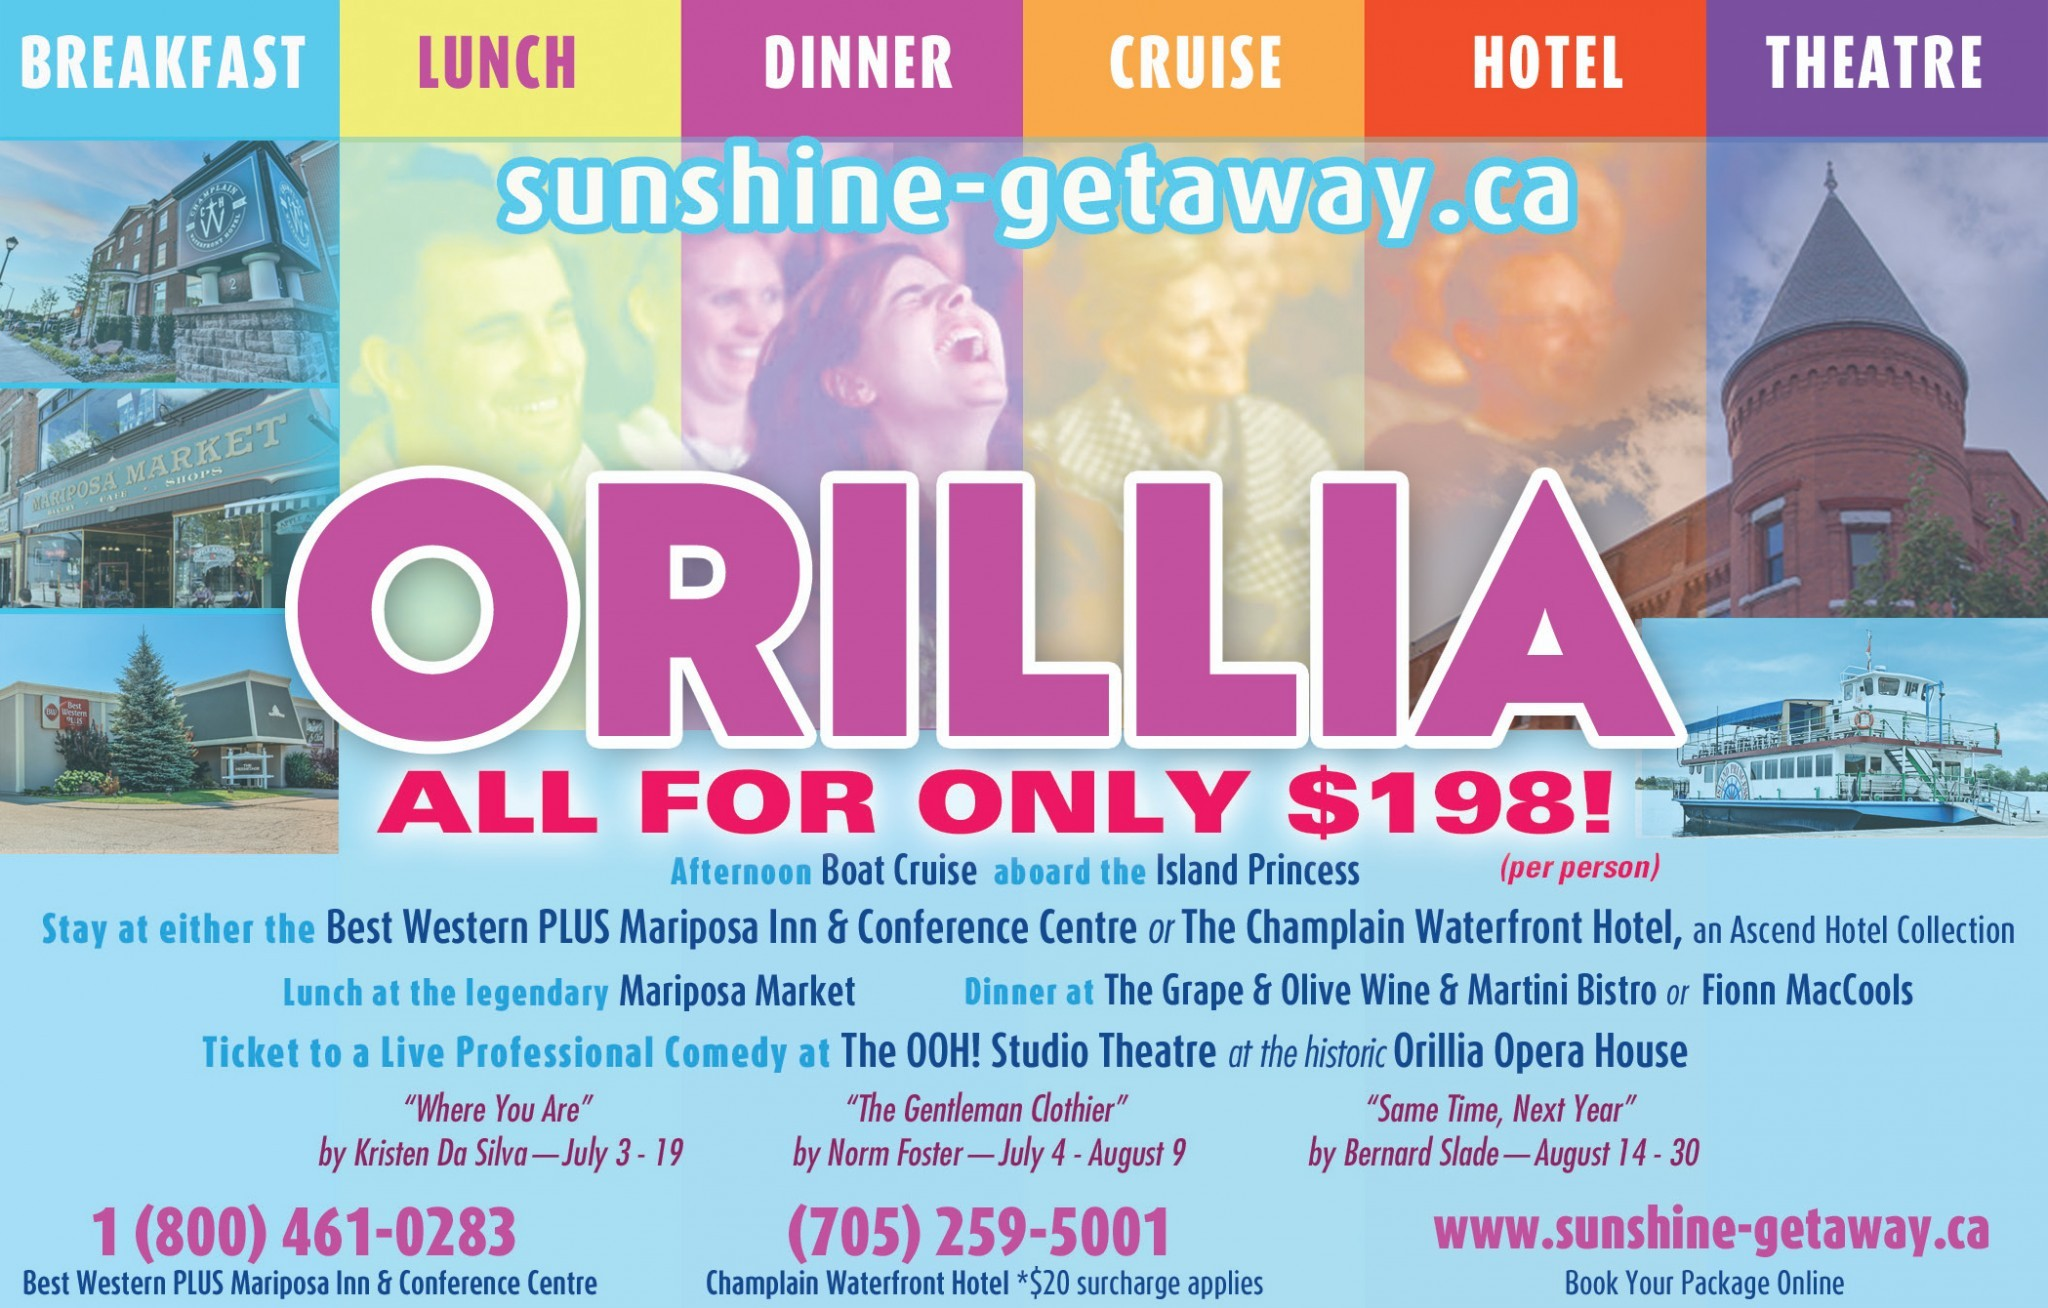 Orillia's Sunshine Getaway Package